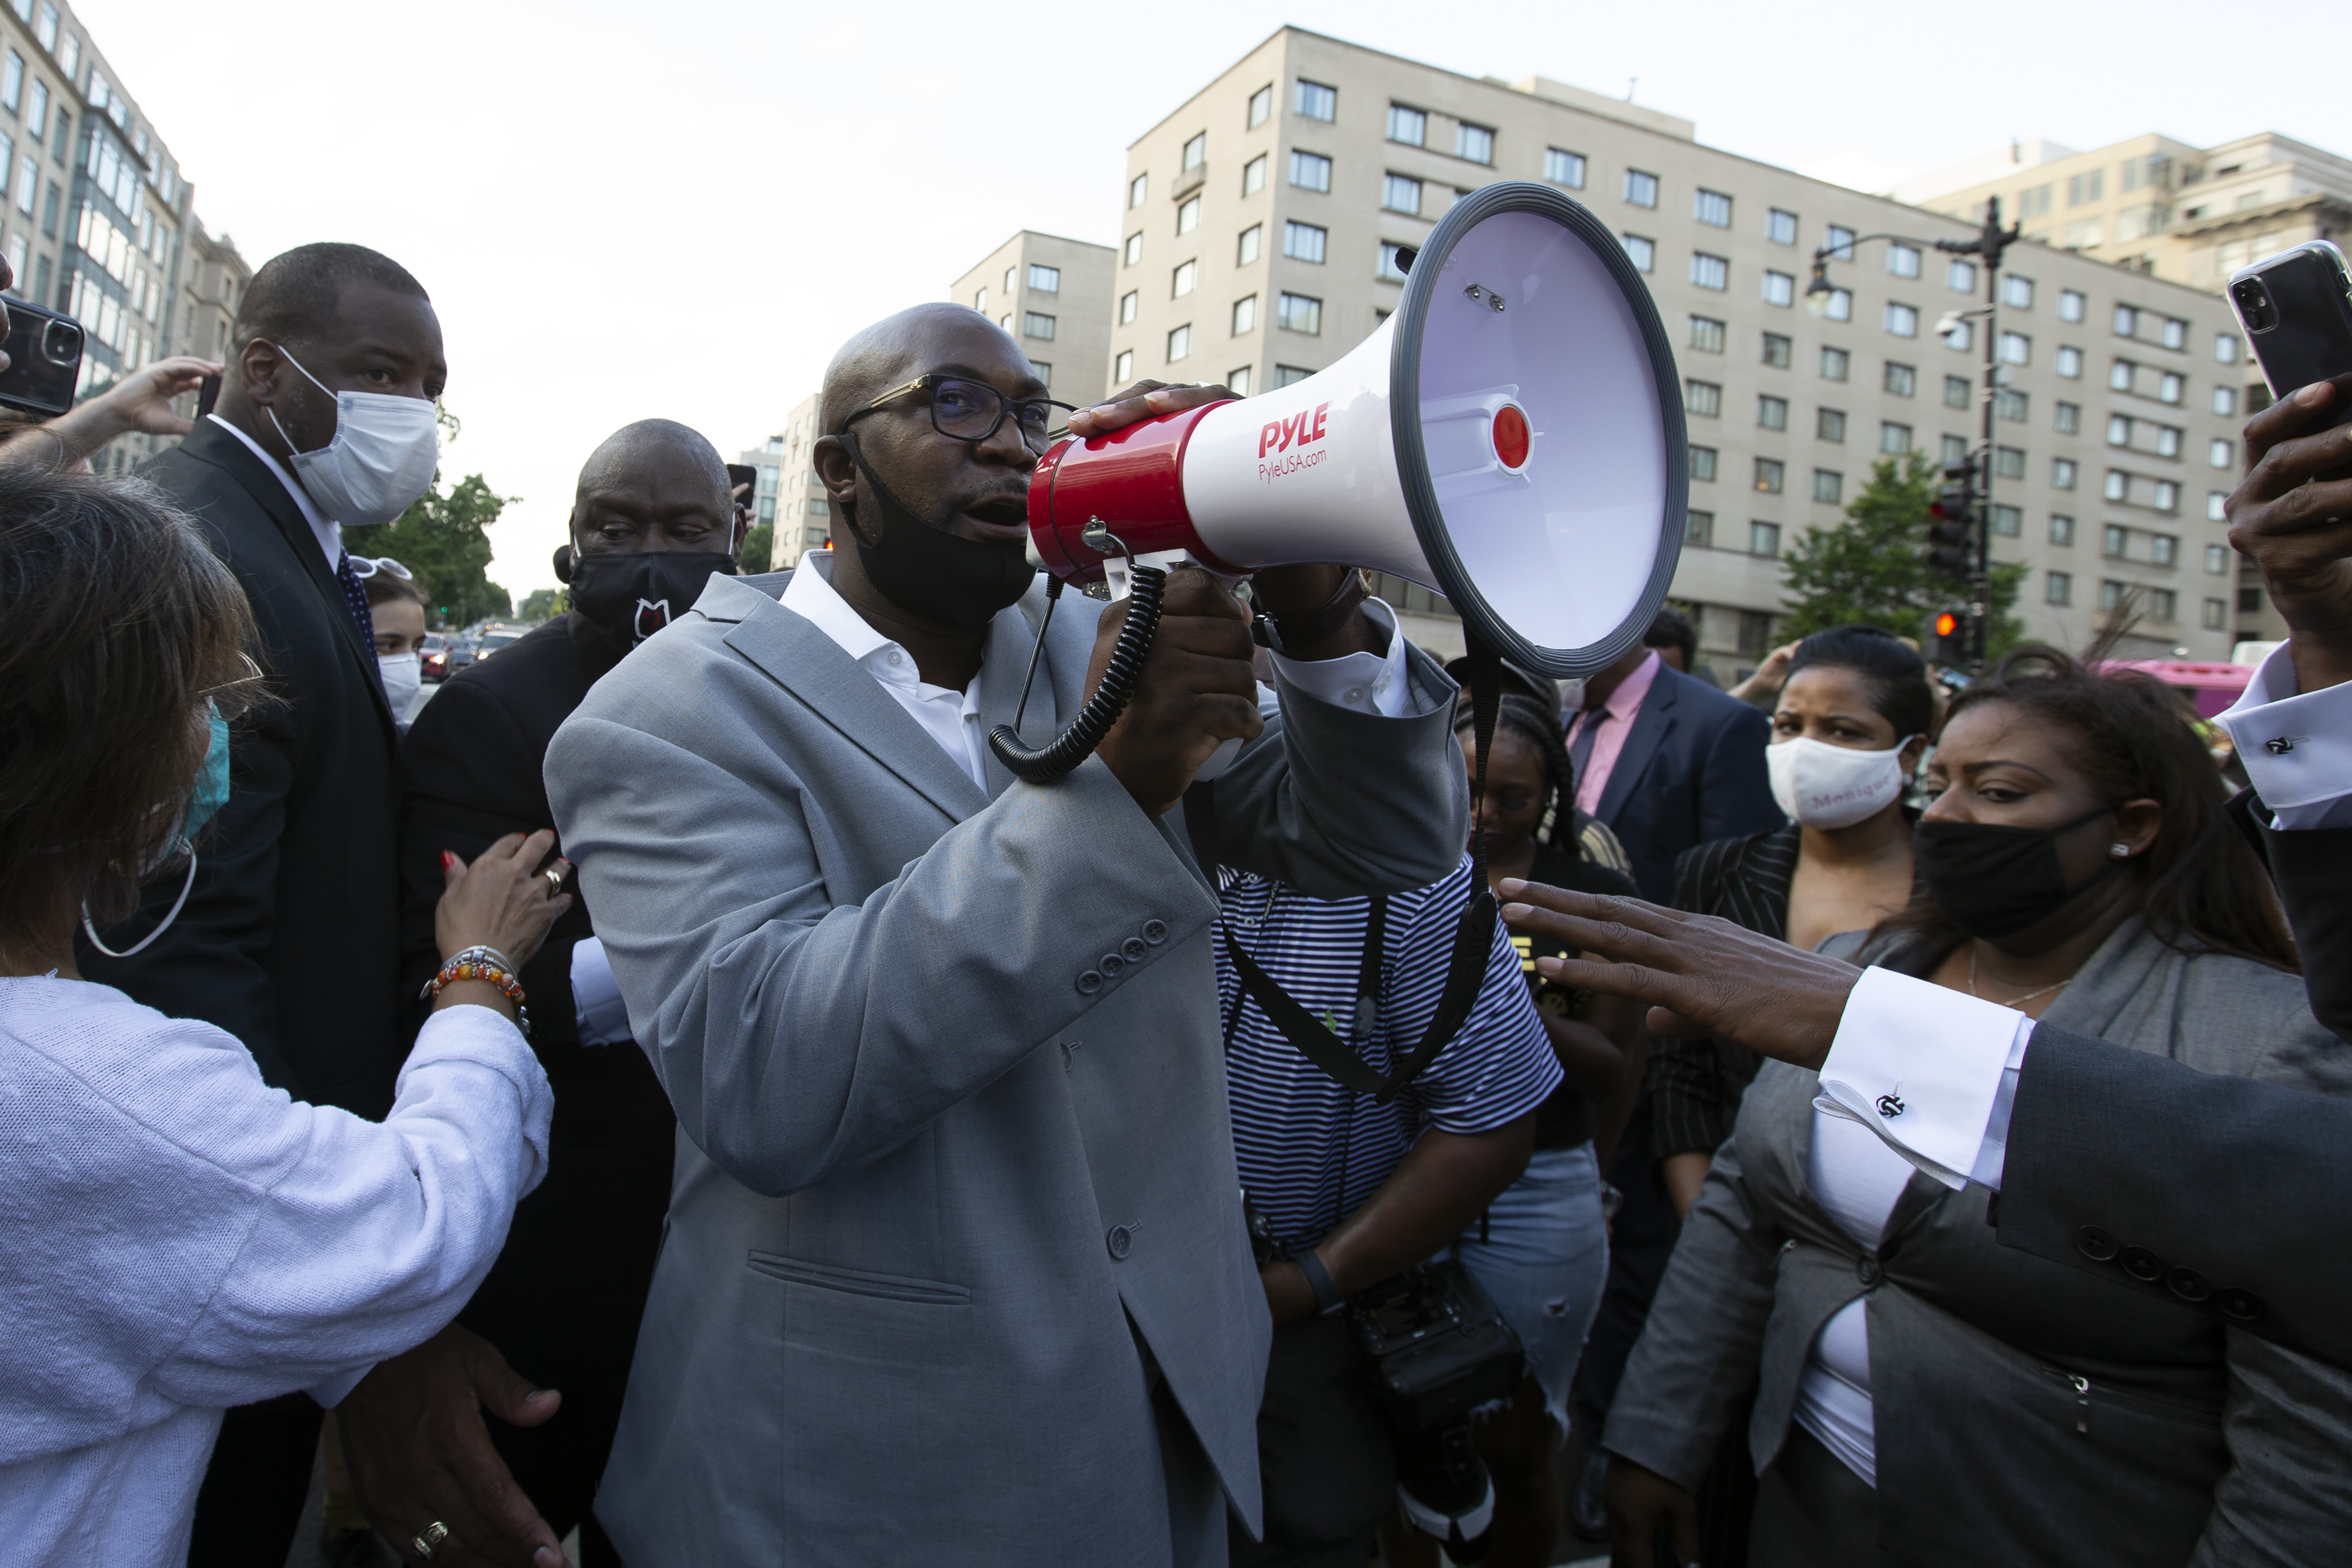 Philonise Floyd (C), George Floyd's brother, speaks to a crowd as he marches with others on Black Lives Matter Plaza near the White House, to protest police brutality and racism, on June 10, 2020 in Washington, DC. (Photo by JOSE LUIS MAGANA/AFP via Getty Images)